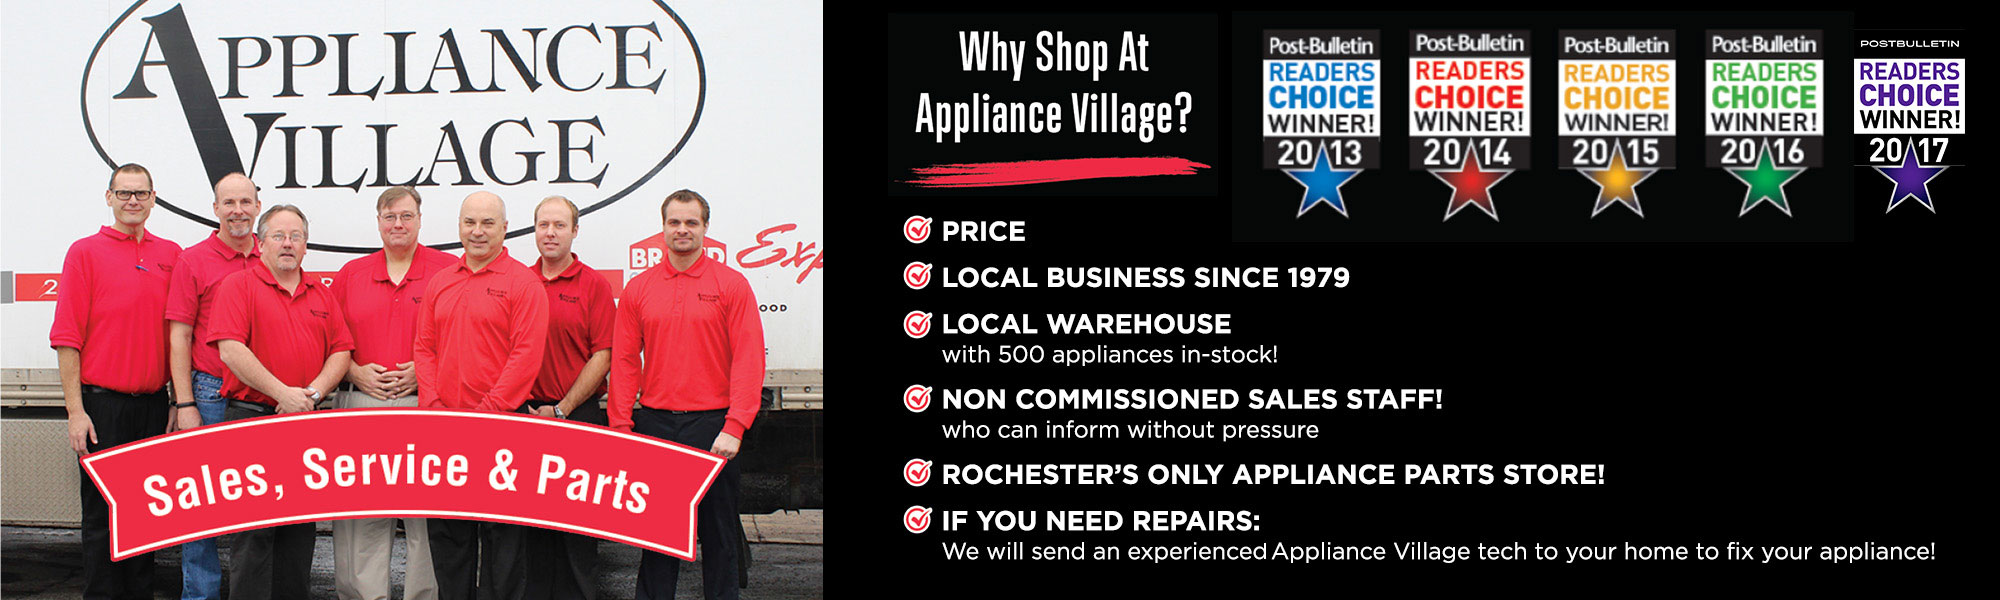 Appliance Village In Rochester Mn Frigidaire Electricdryer 5995298980 Parts Amana Appliances Black Friday Whirlpool Why Shop At